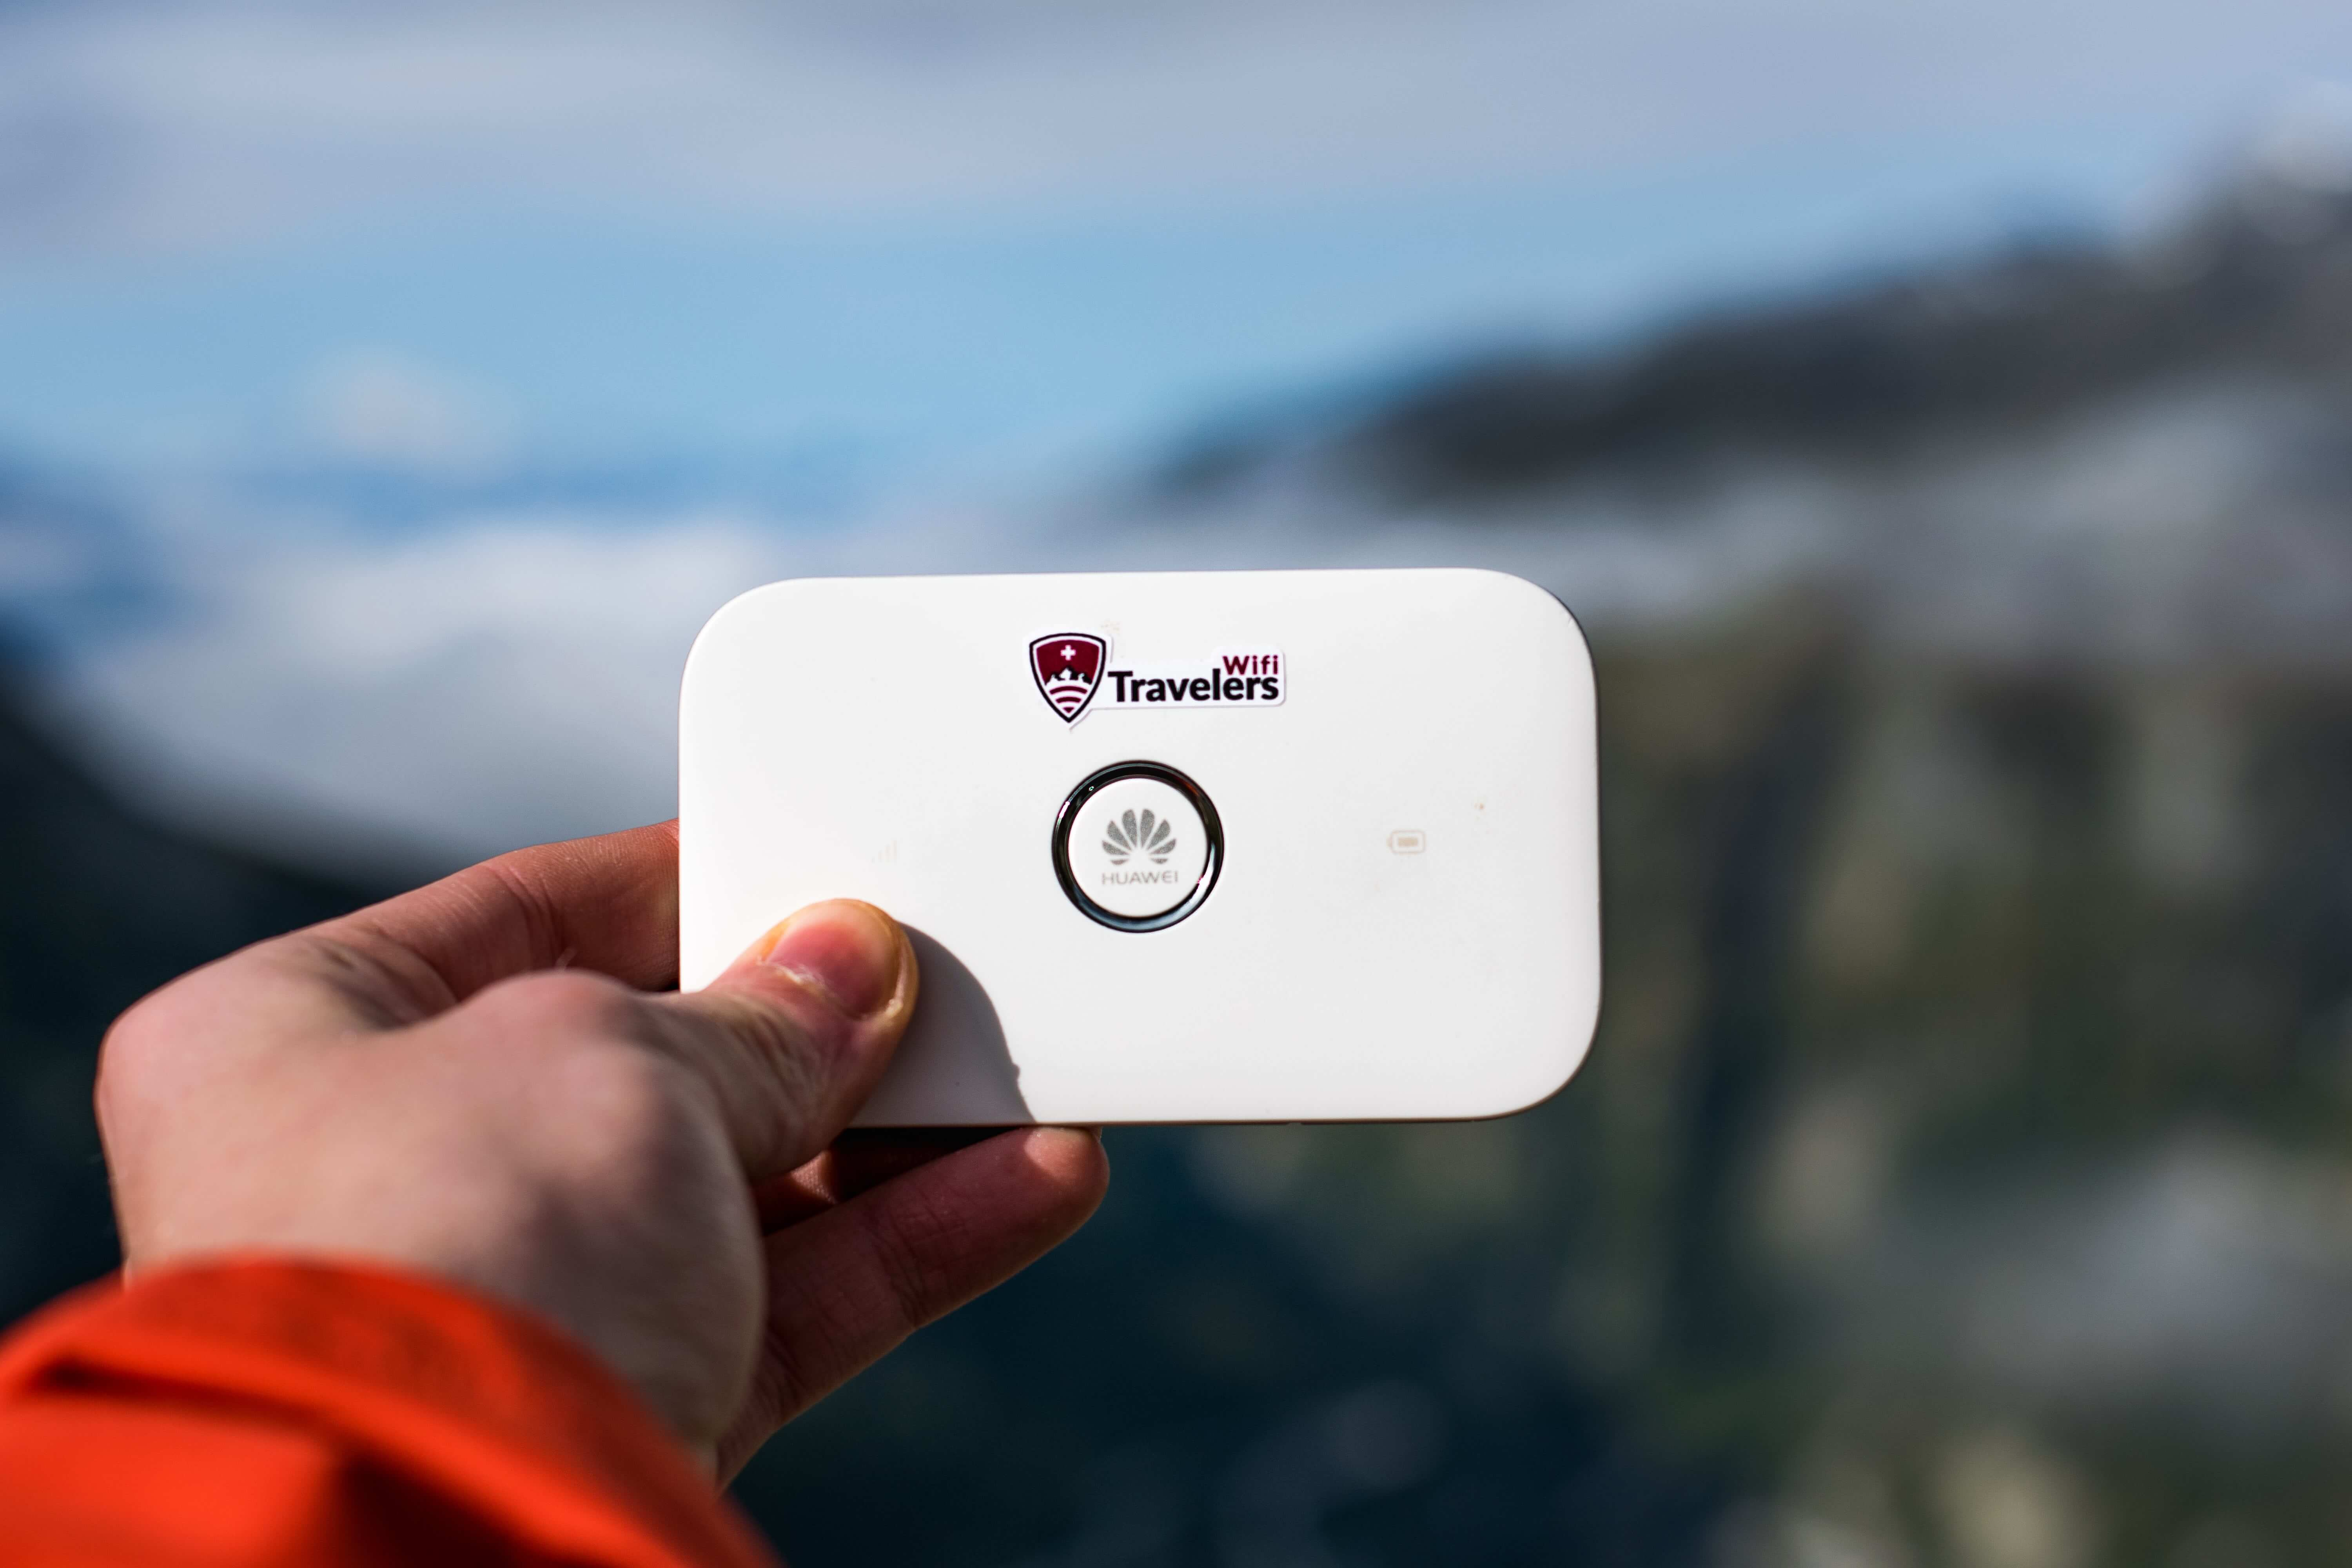 Switzerland Travelers Wifi Pocket Wifi